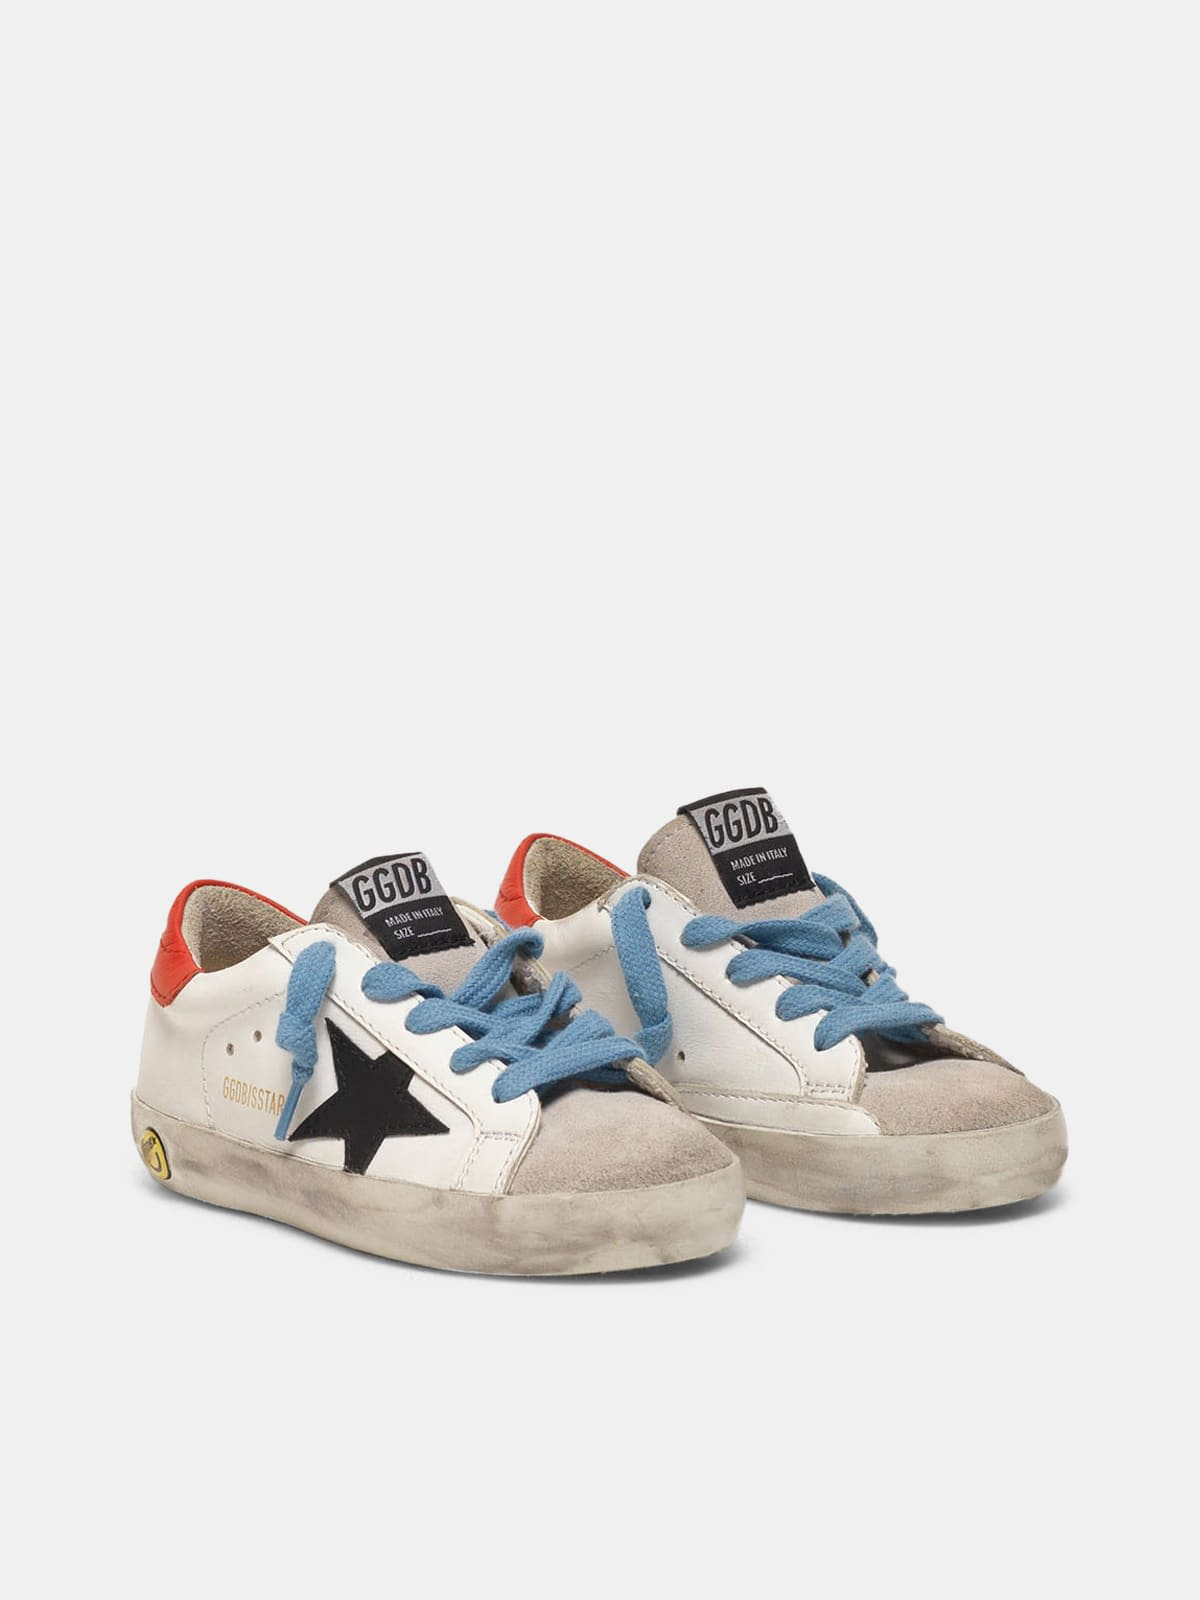 Super-Star sneakers with red heel tab and sky blue laces